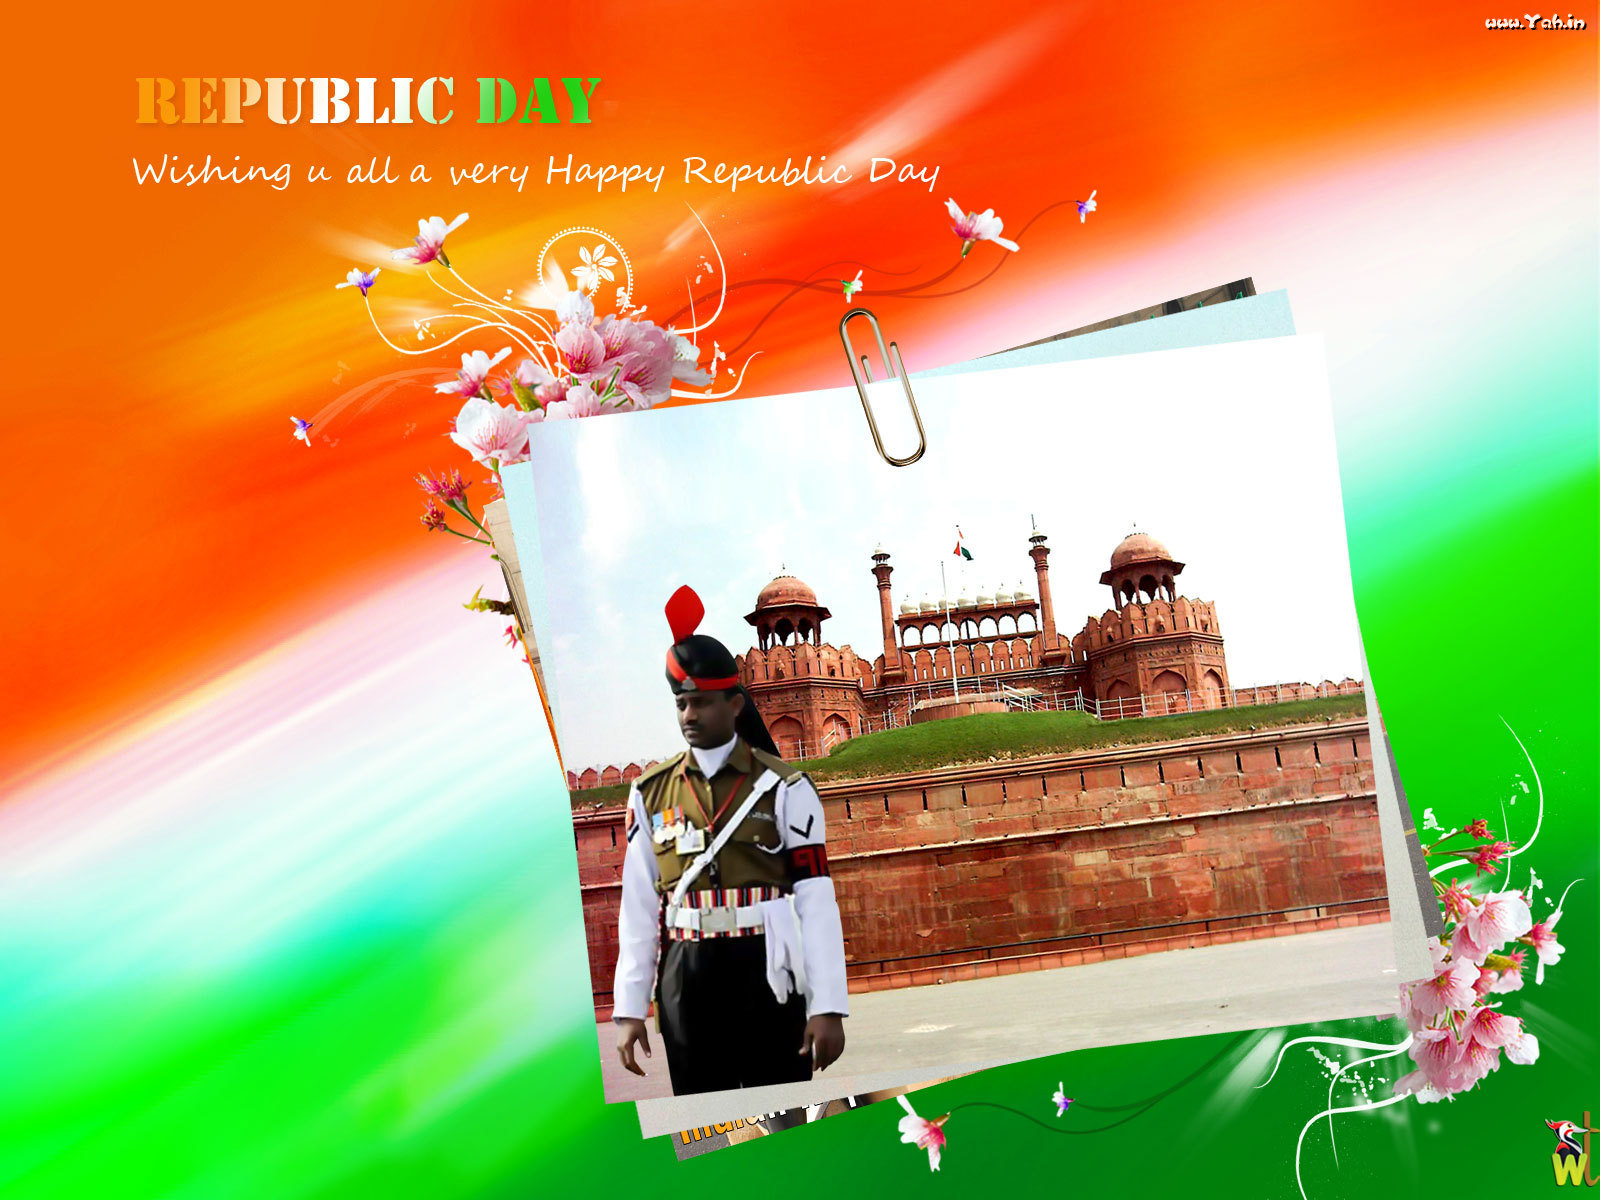 Gandhi Ji With Indian Flag Hd: Pic New Posts: Wallpaper Of Republic Day